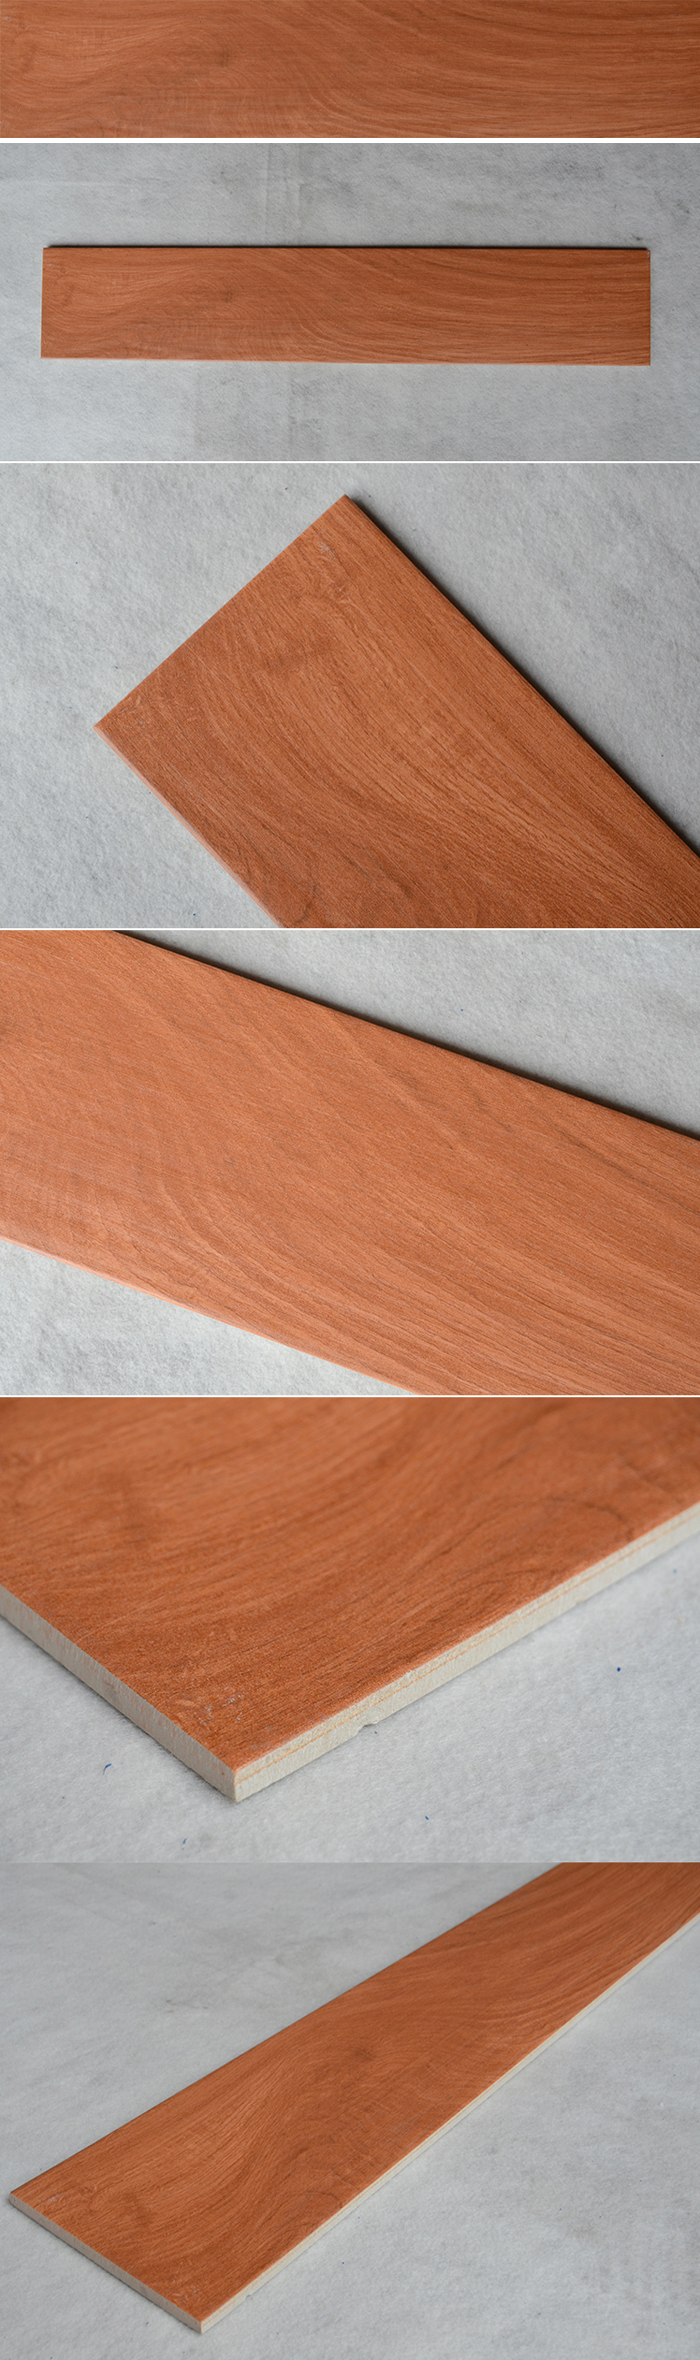 HJ15802M wood texture wood grain vitrified wood finish porcelain tile